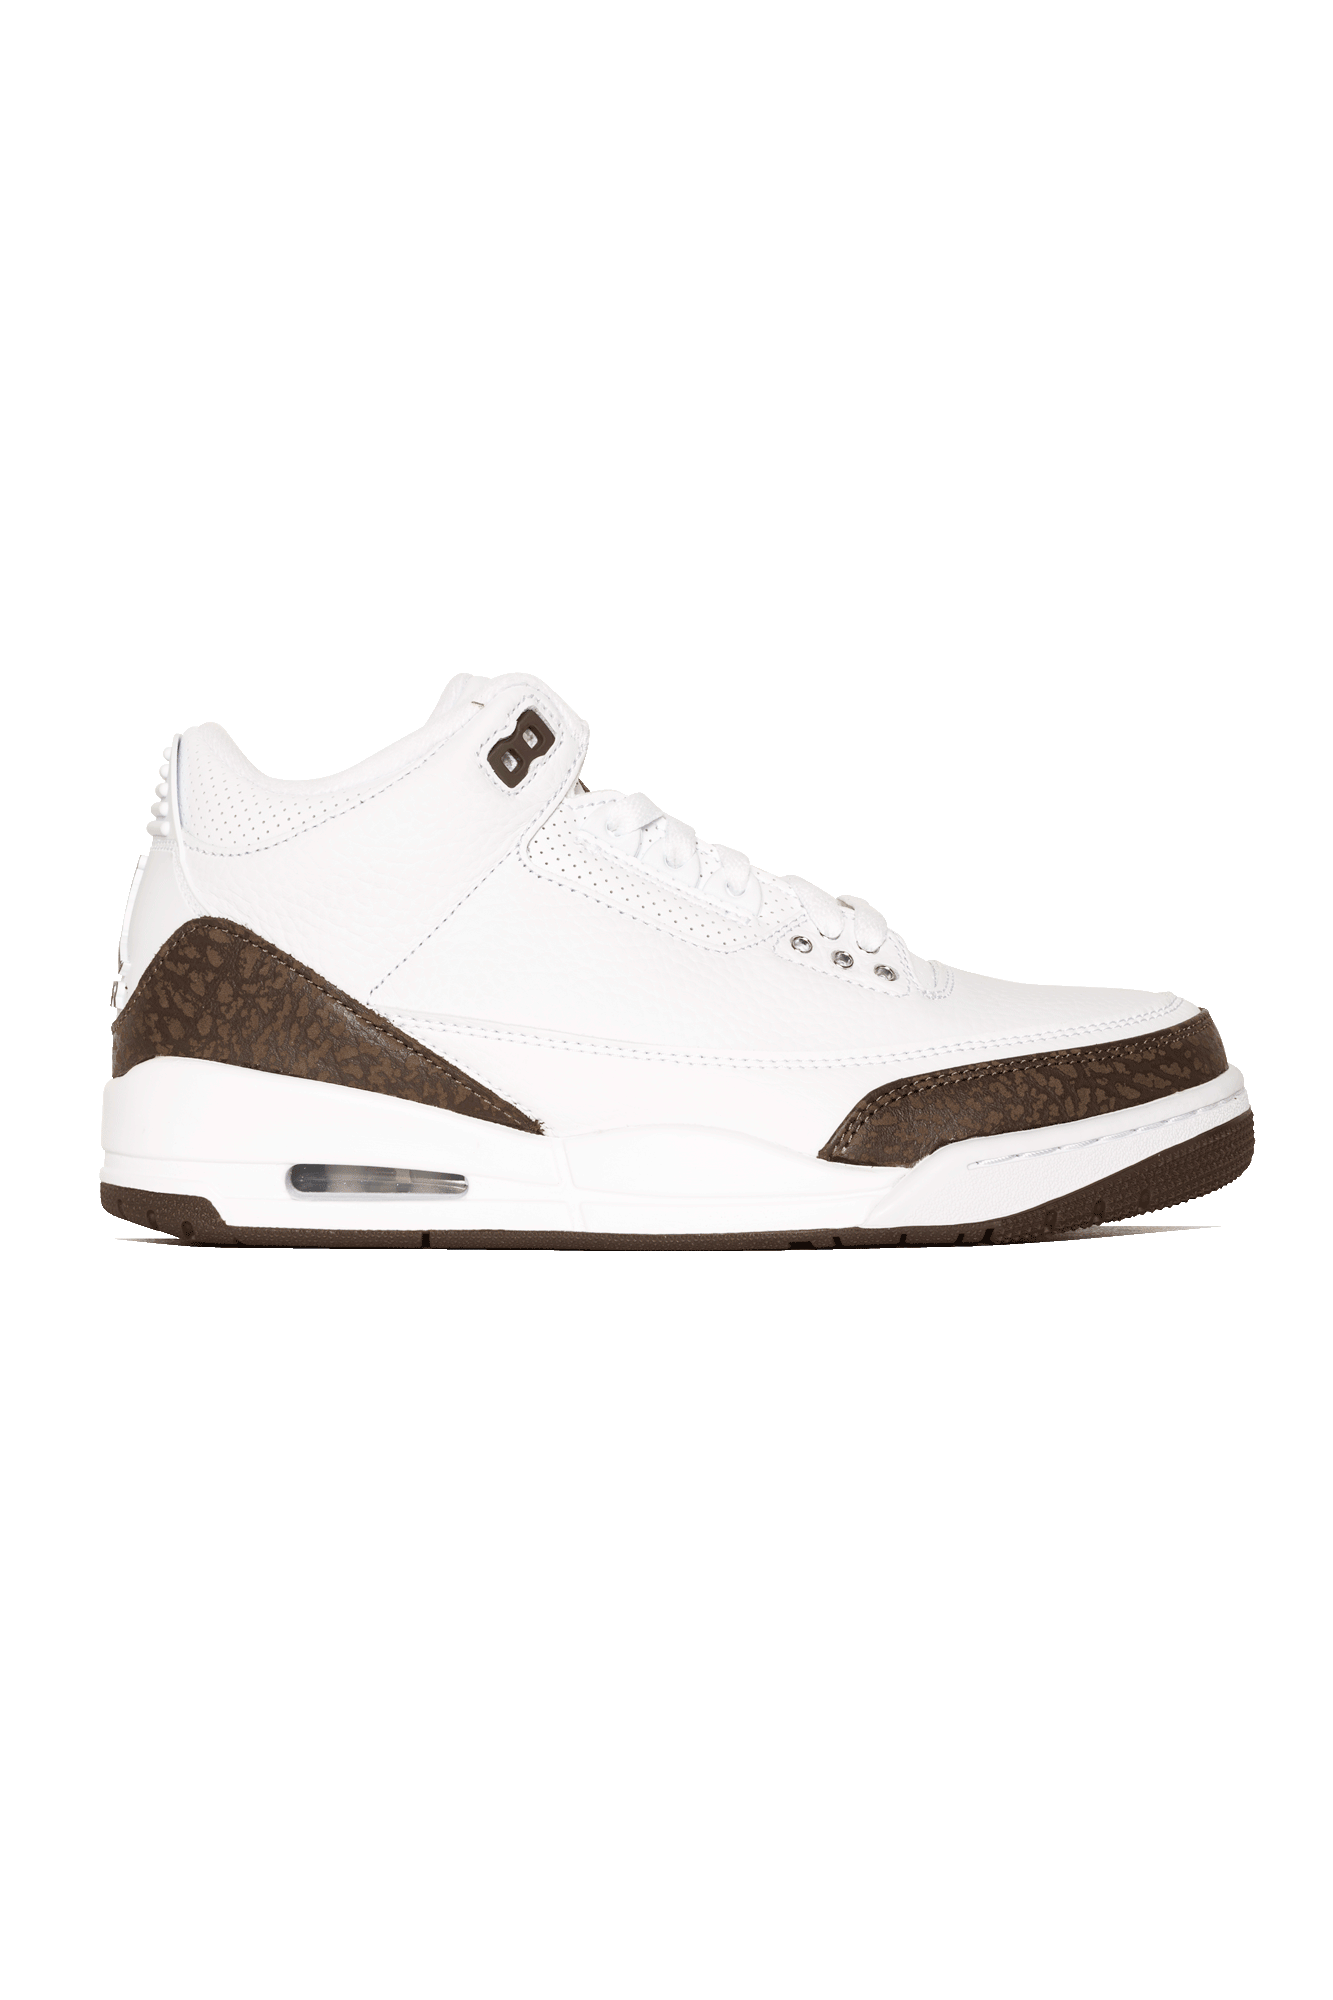 Sneakers Air Jordan 3 Retro White - One Block Down